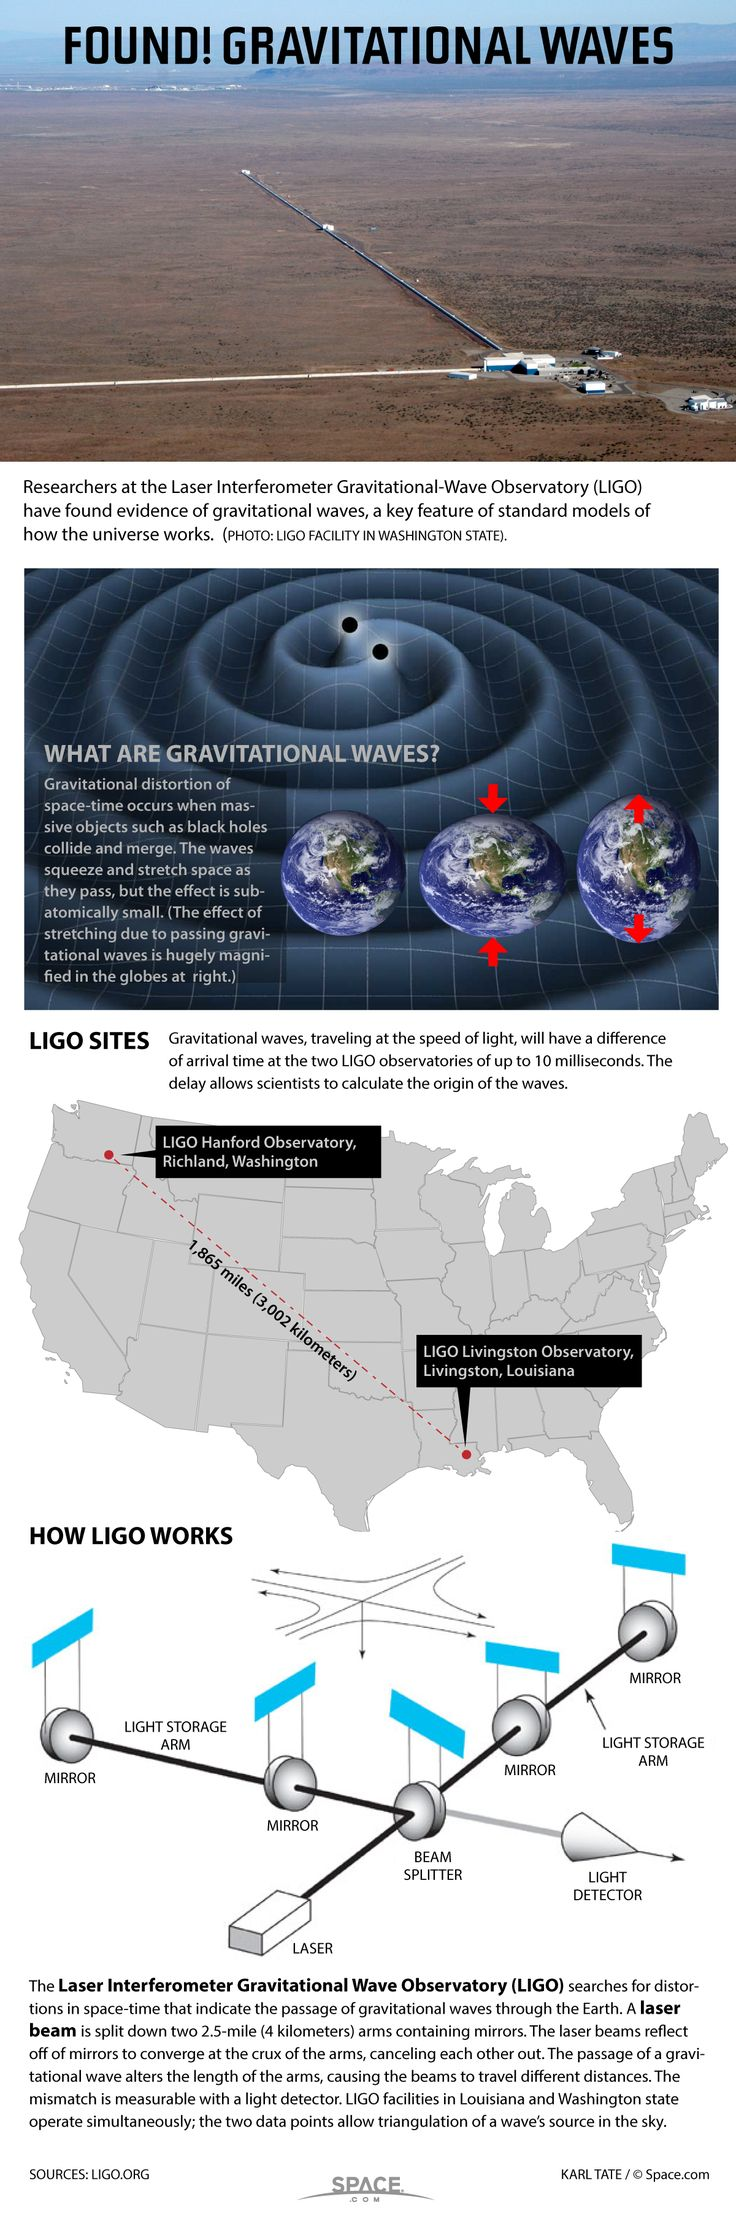 See how scientists use lasers to hunt gravitational waves with the See how they'll do it with the Laser Interferometer Gravitational-Wave Observatory (LIGO) in this Space.com infographic.